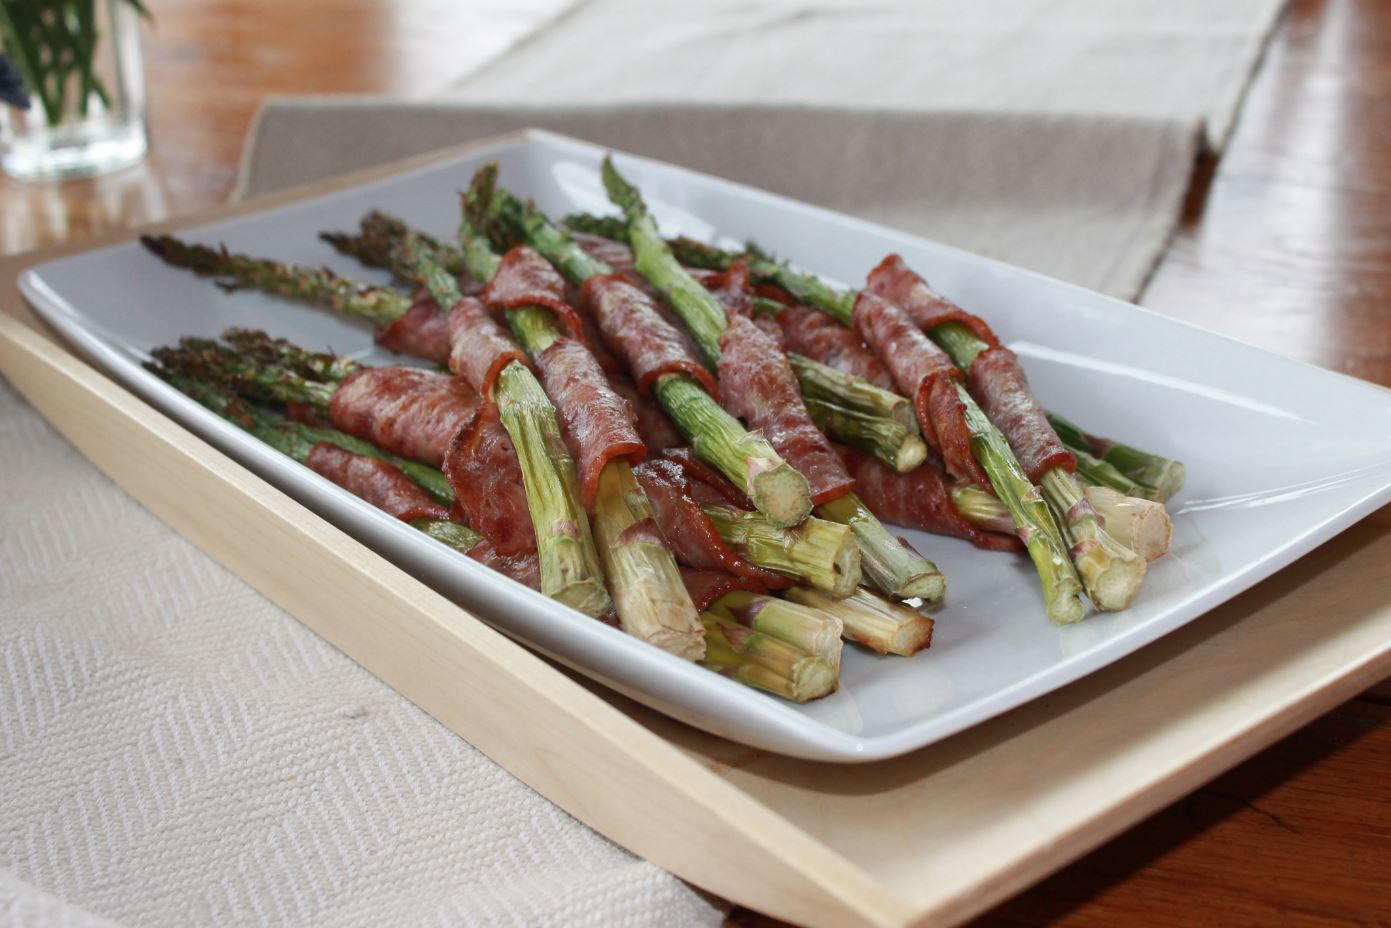 Wellshire Pork Shoulder Square Cut Uncured Bacon wrapped around asparagus spears.